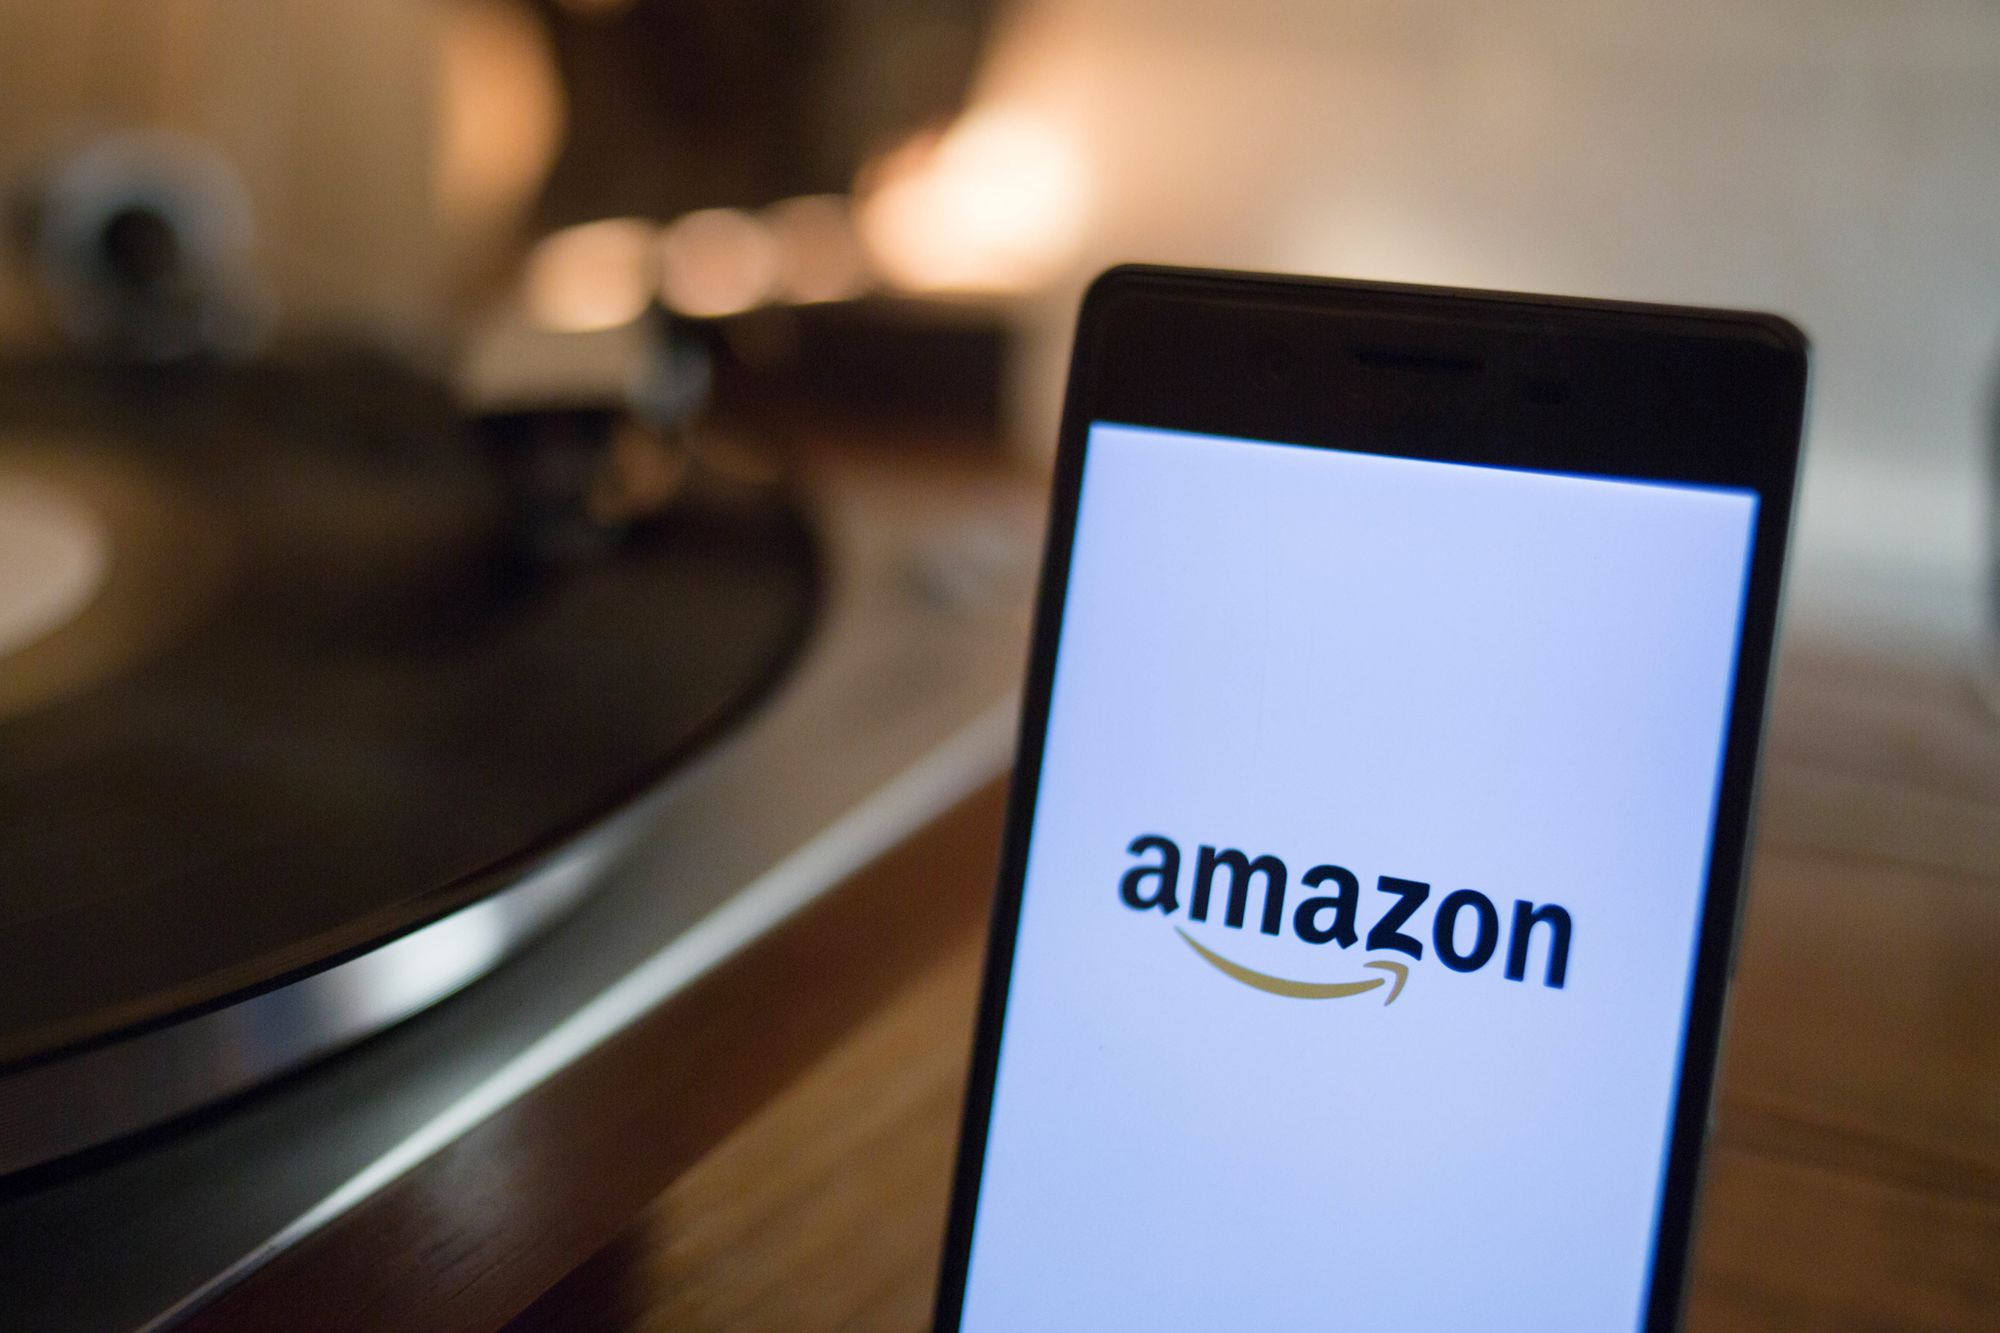 Amazon vs. eBay: The Future of Online Shopping